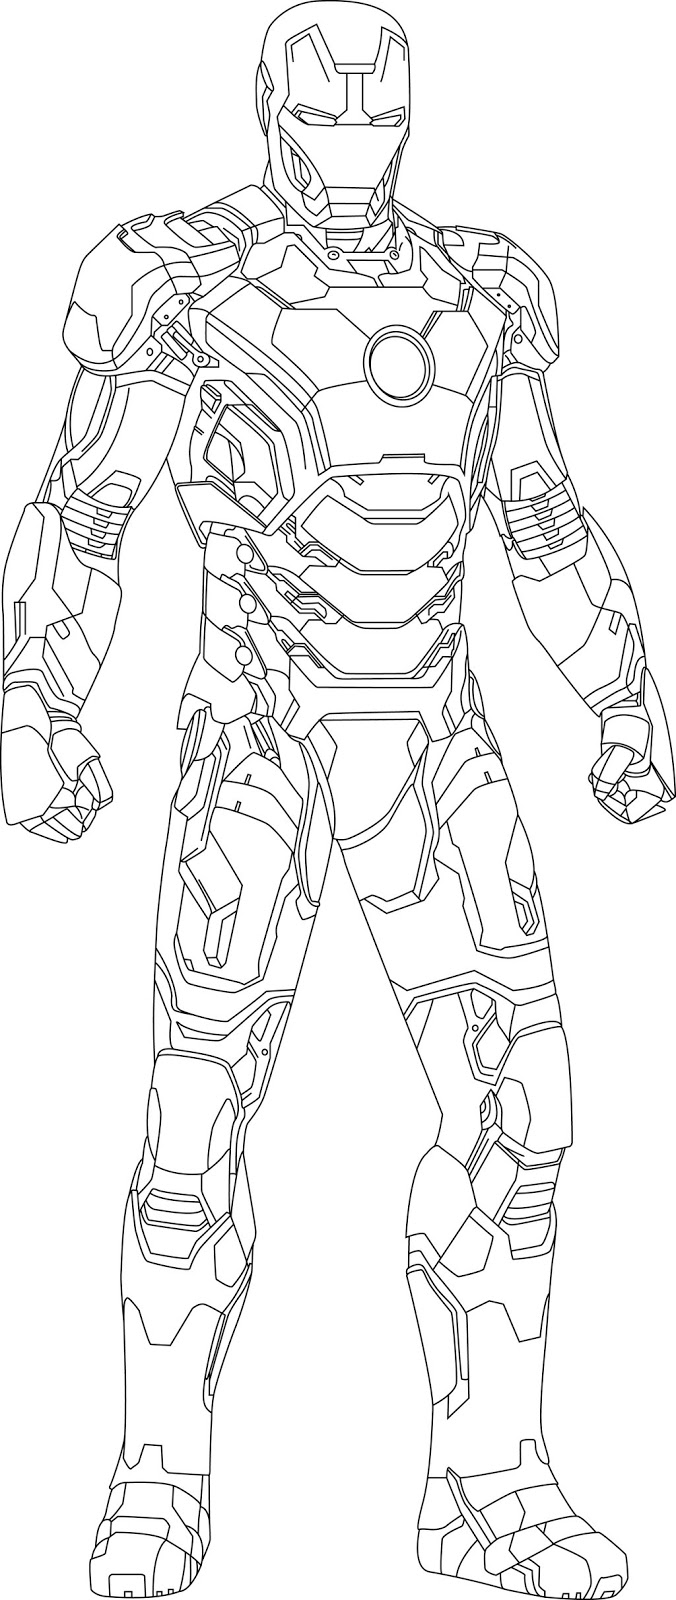 coloring iron man coloring pages for kids free images iron man avengers man iron coloring